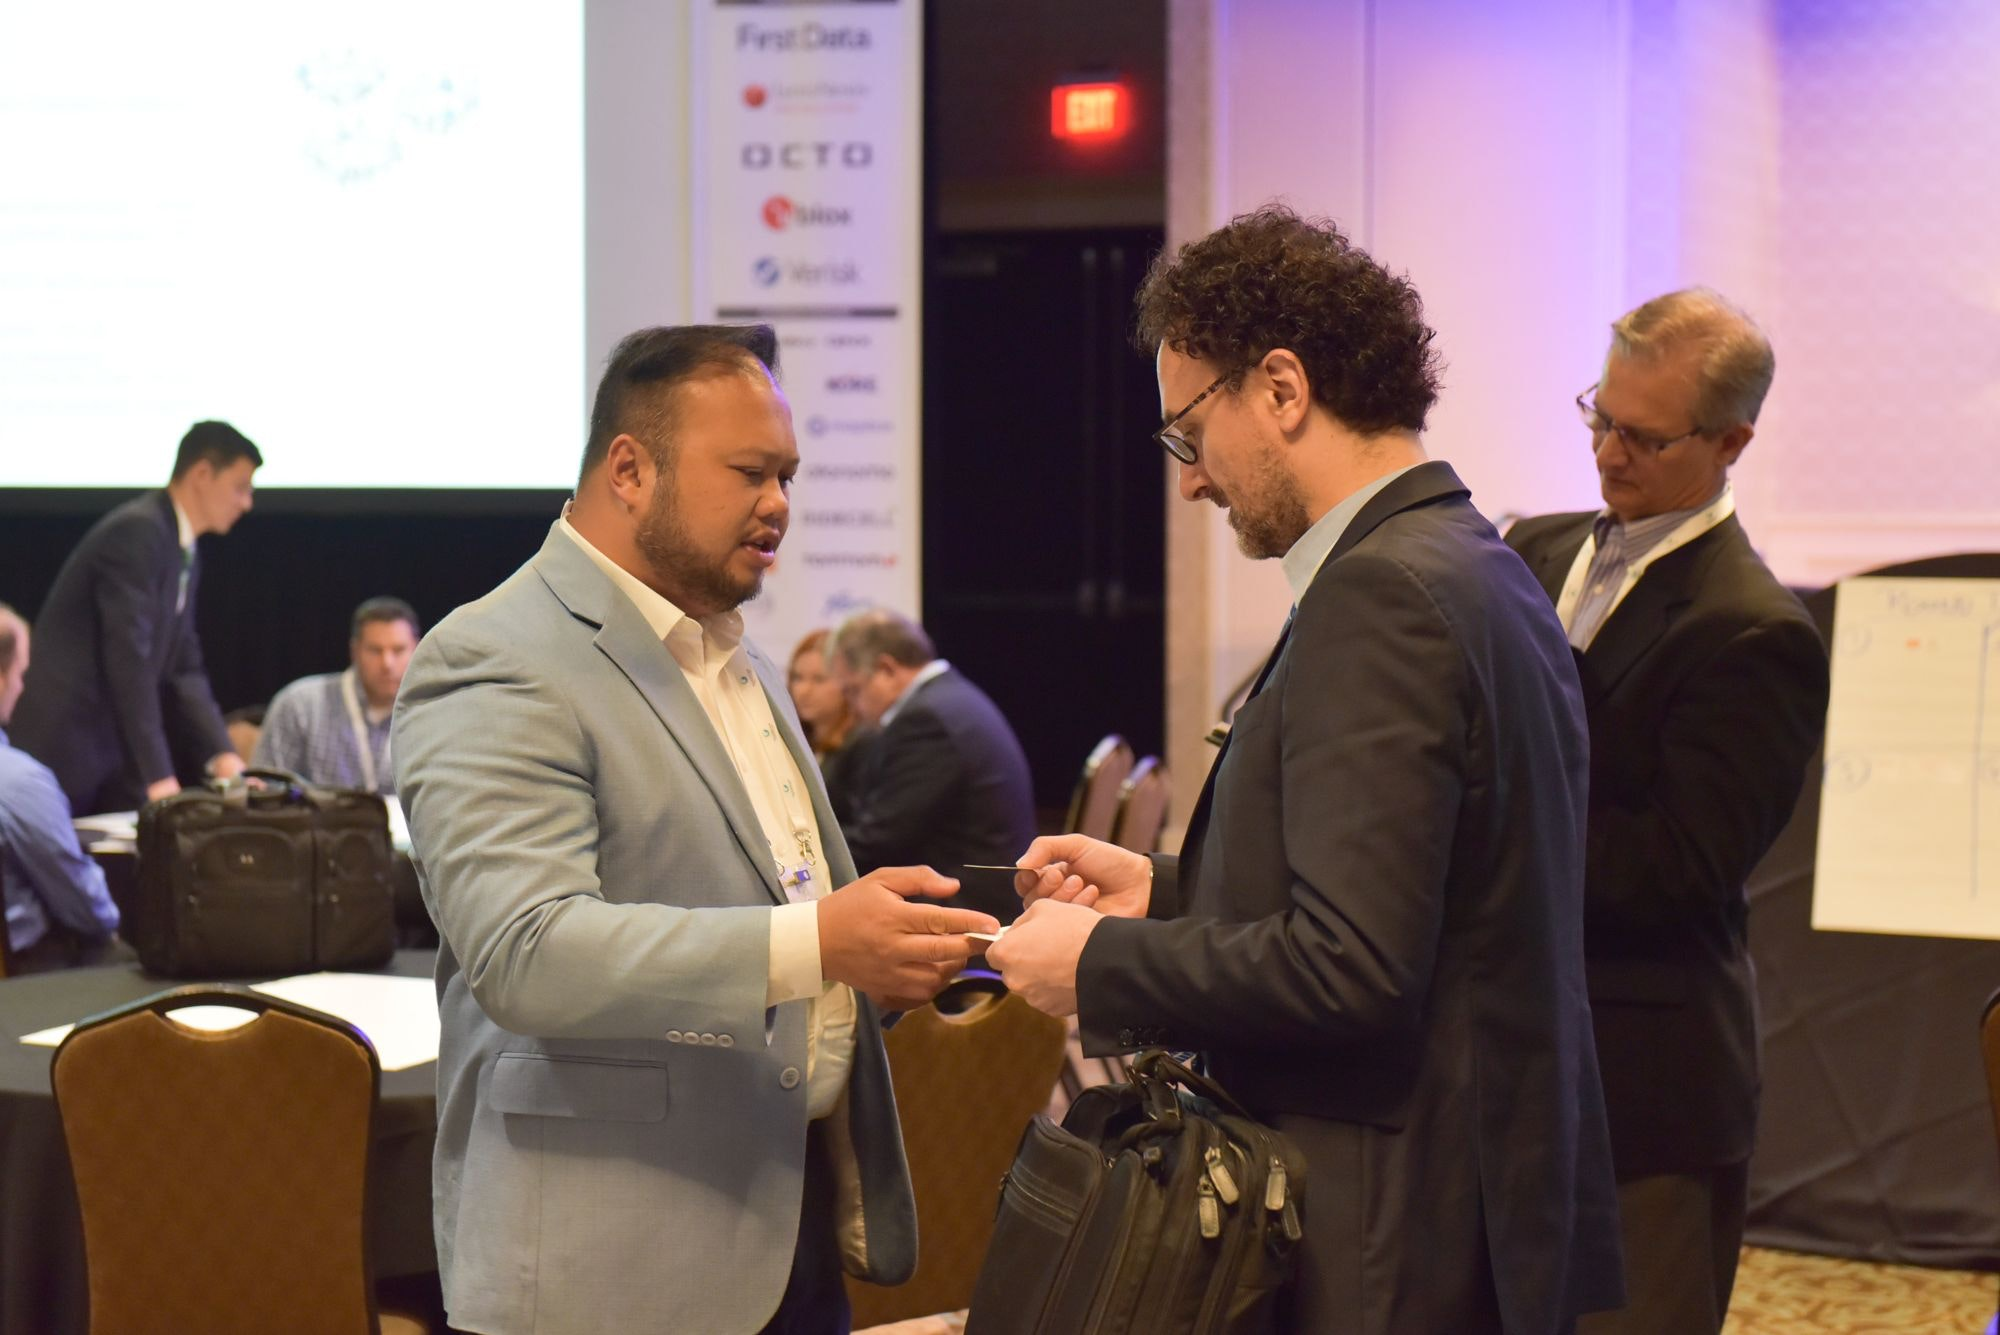 Automotive executives networking and swapping business cards